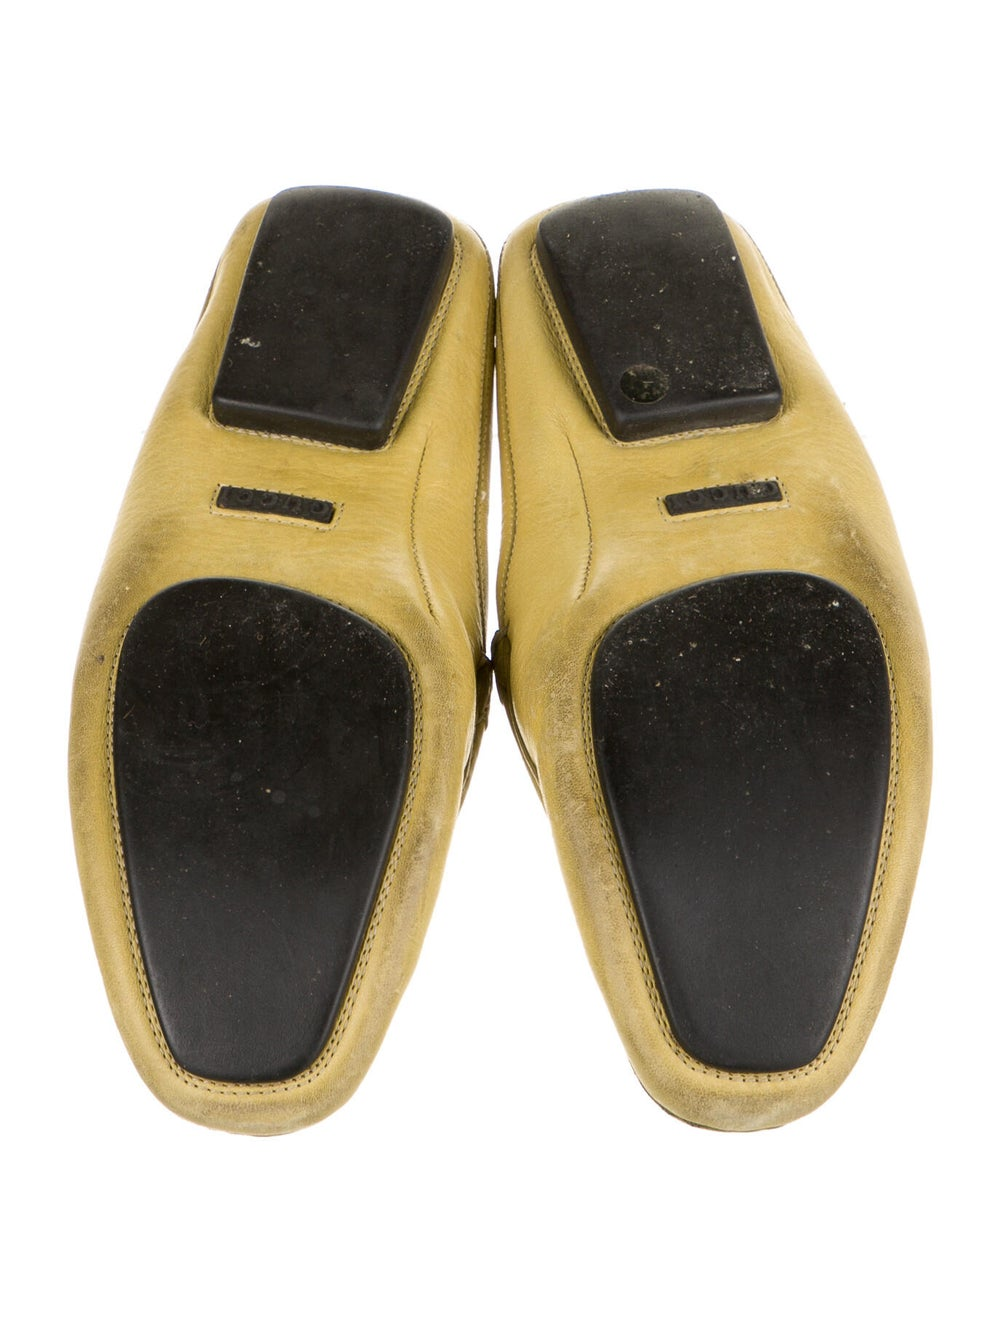 Gucci Leather Mules Yellow - image 5